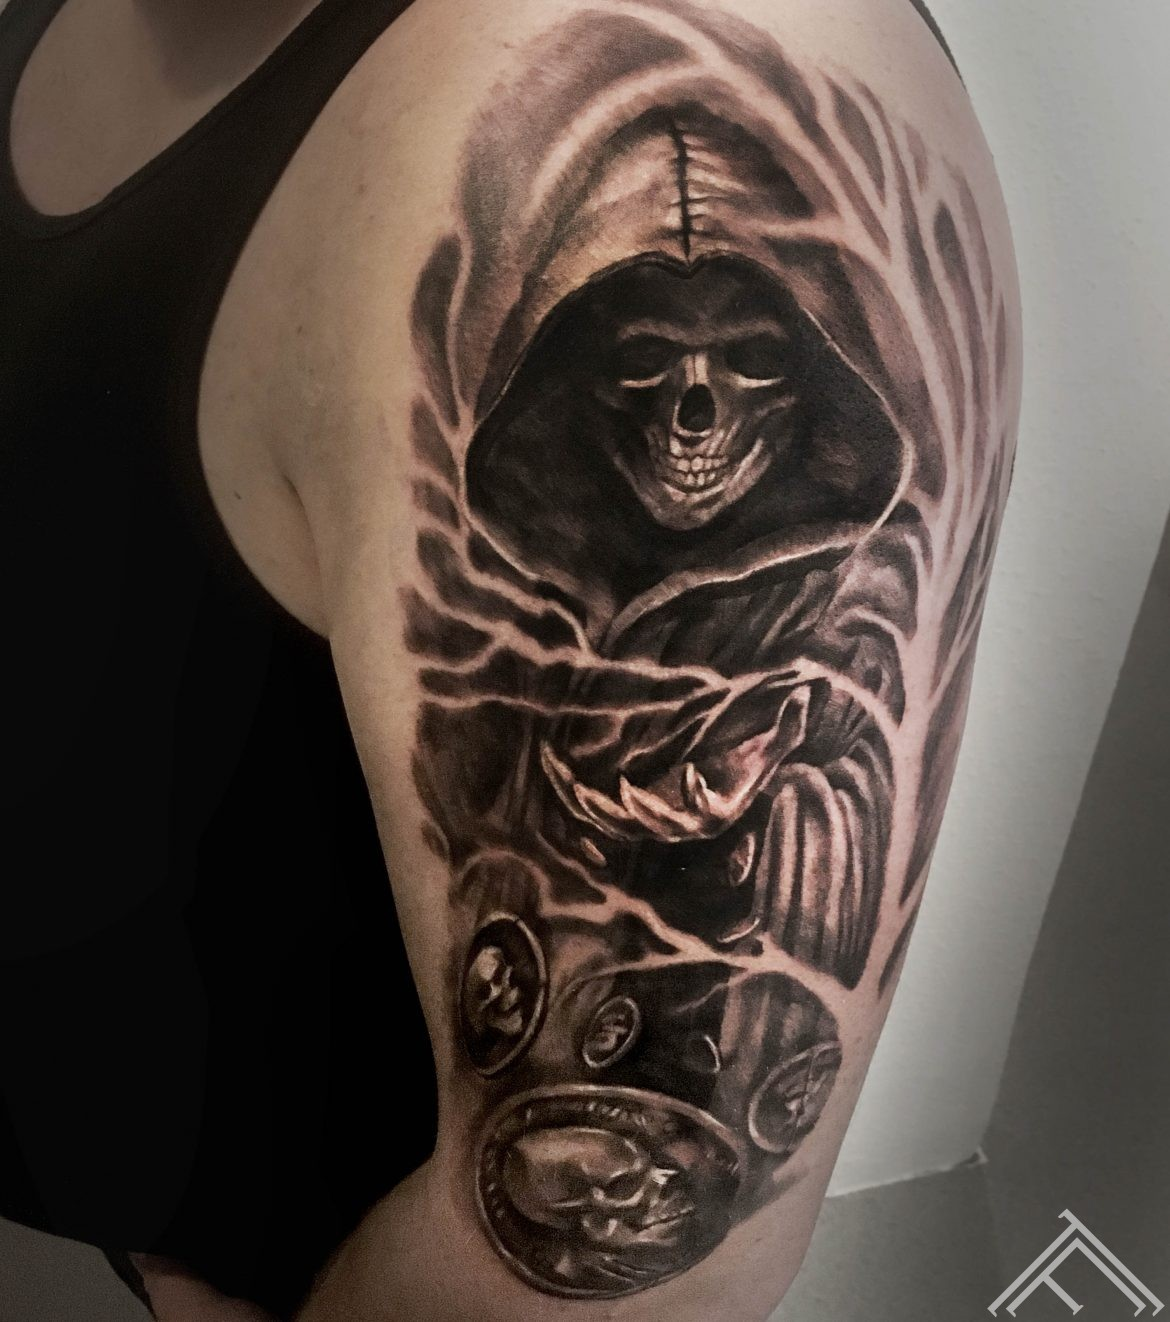 sasha-thunder-skull-tattoo